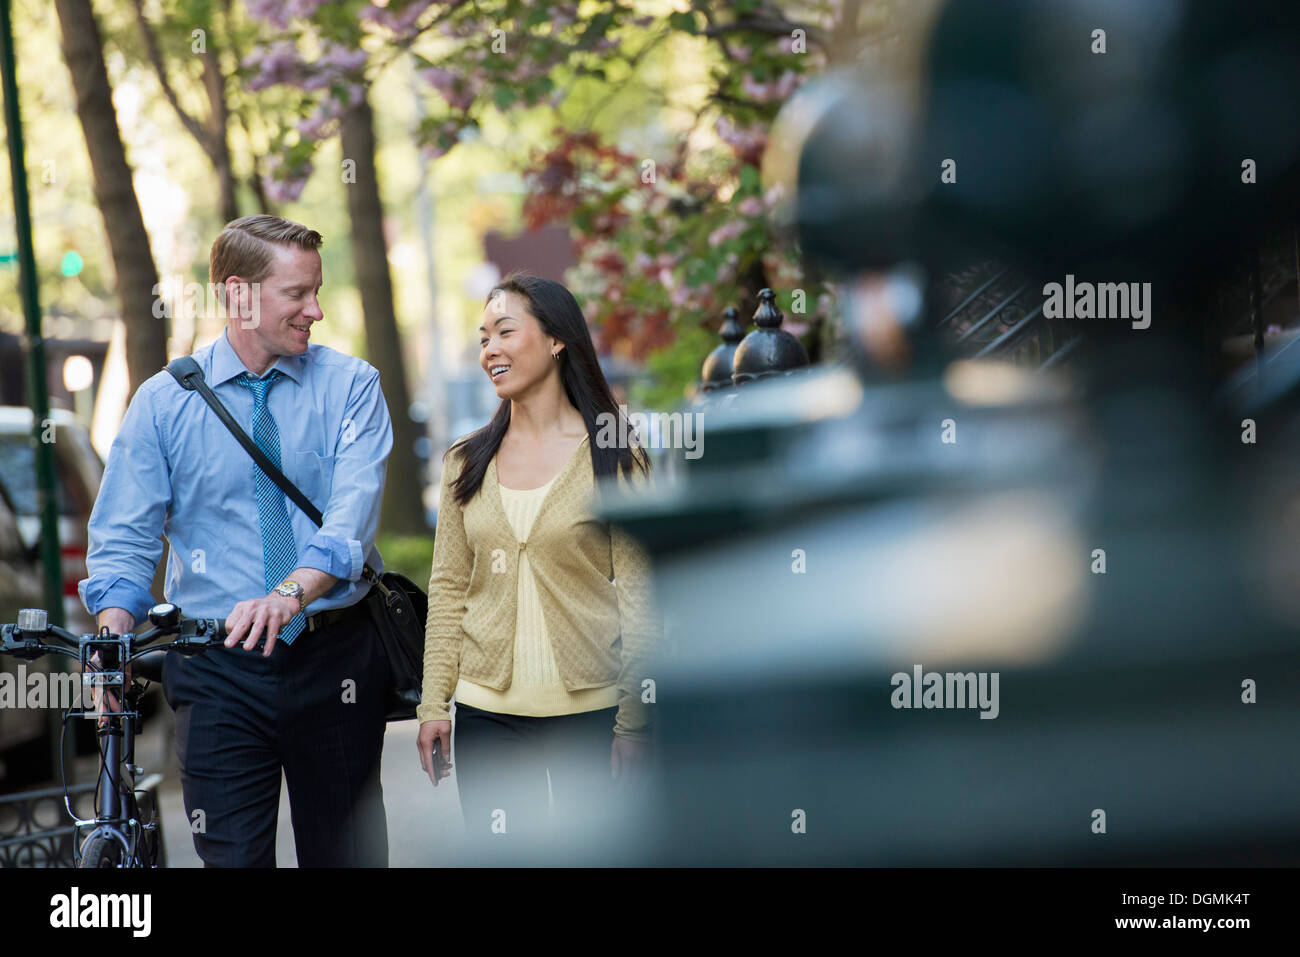 A man in a shirt and tie pushing a bicycle, and talking to a woman. - Stock Image